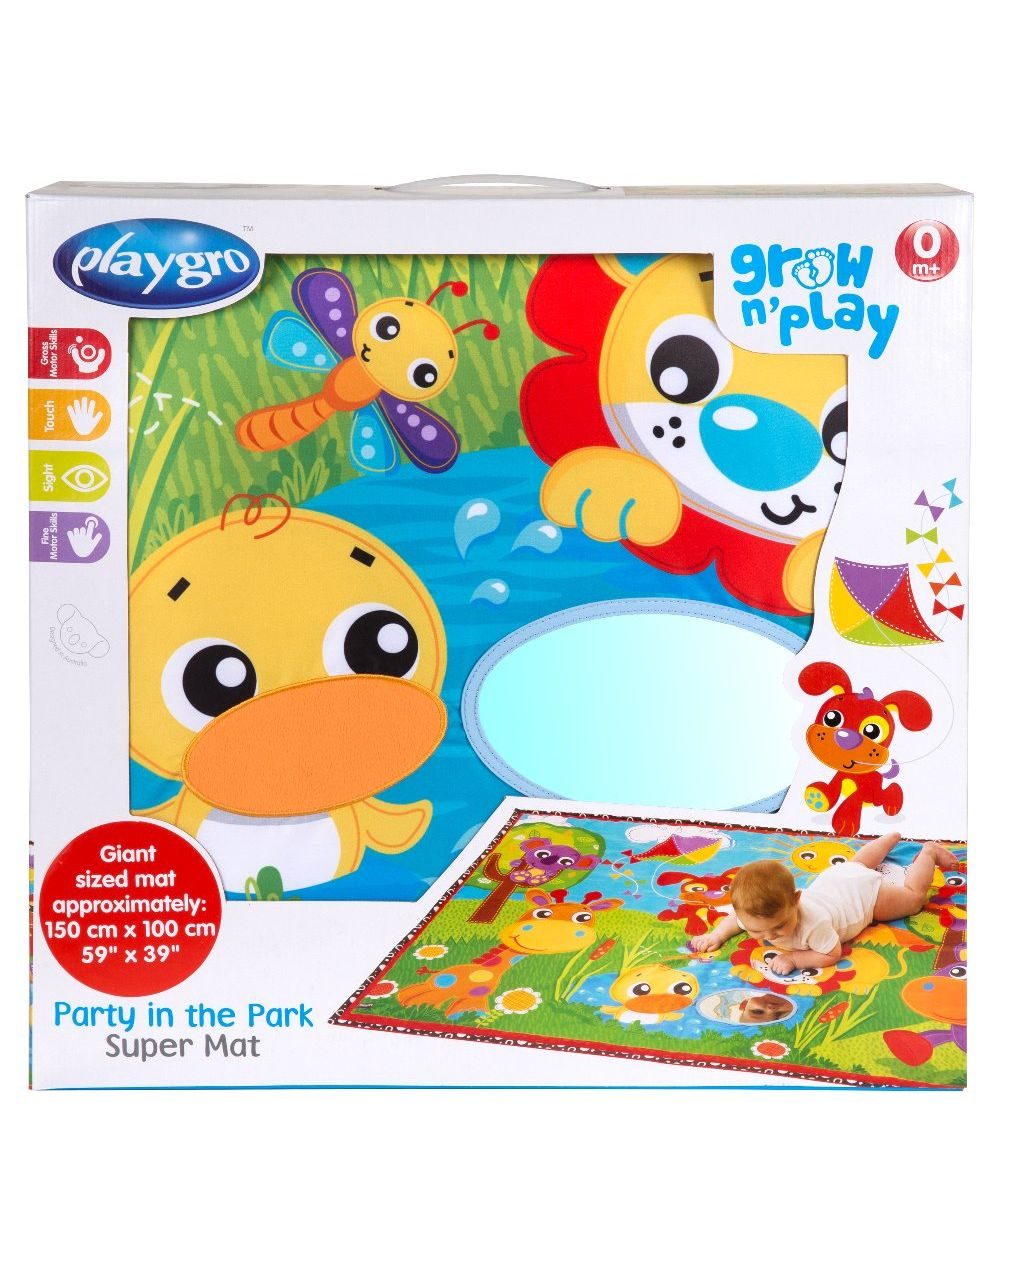 Party in the park jumbo mat - Playgro